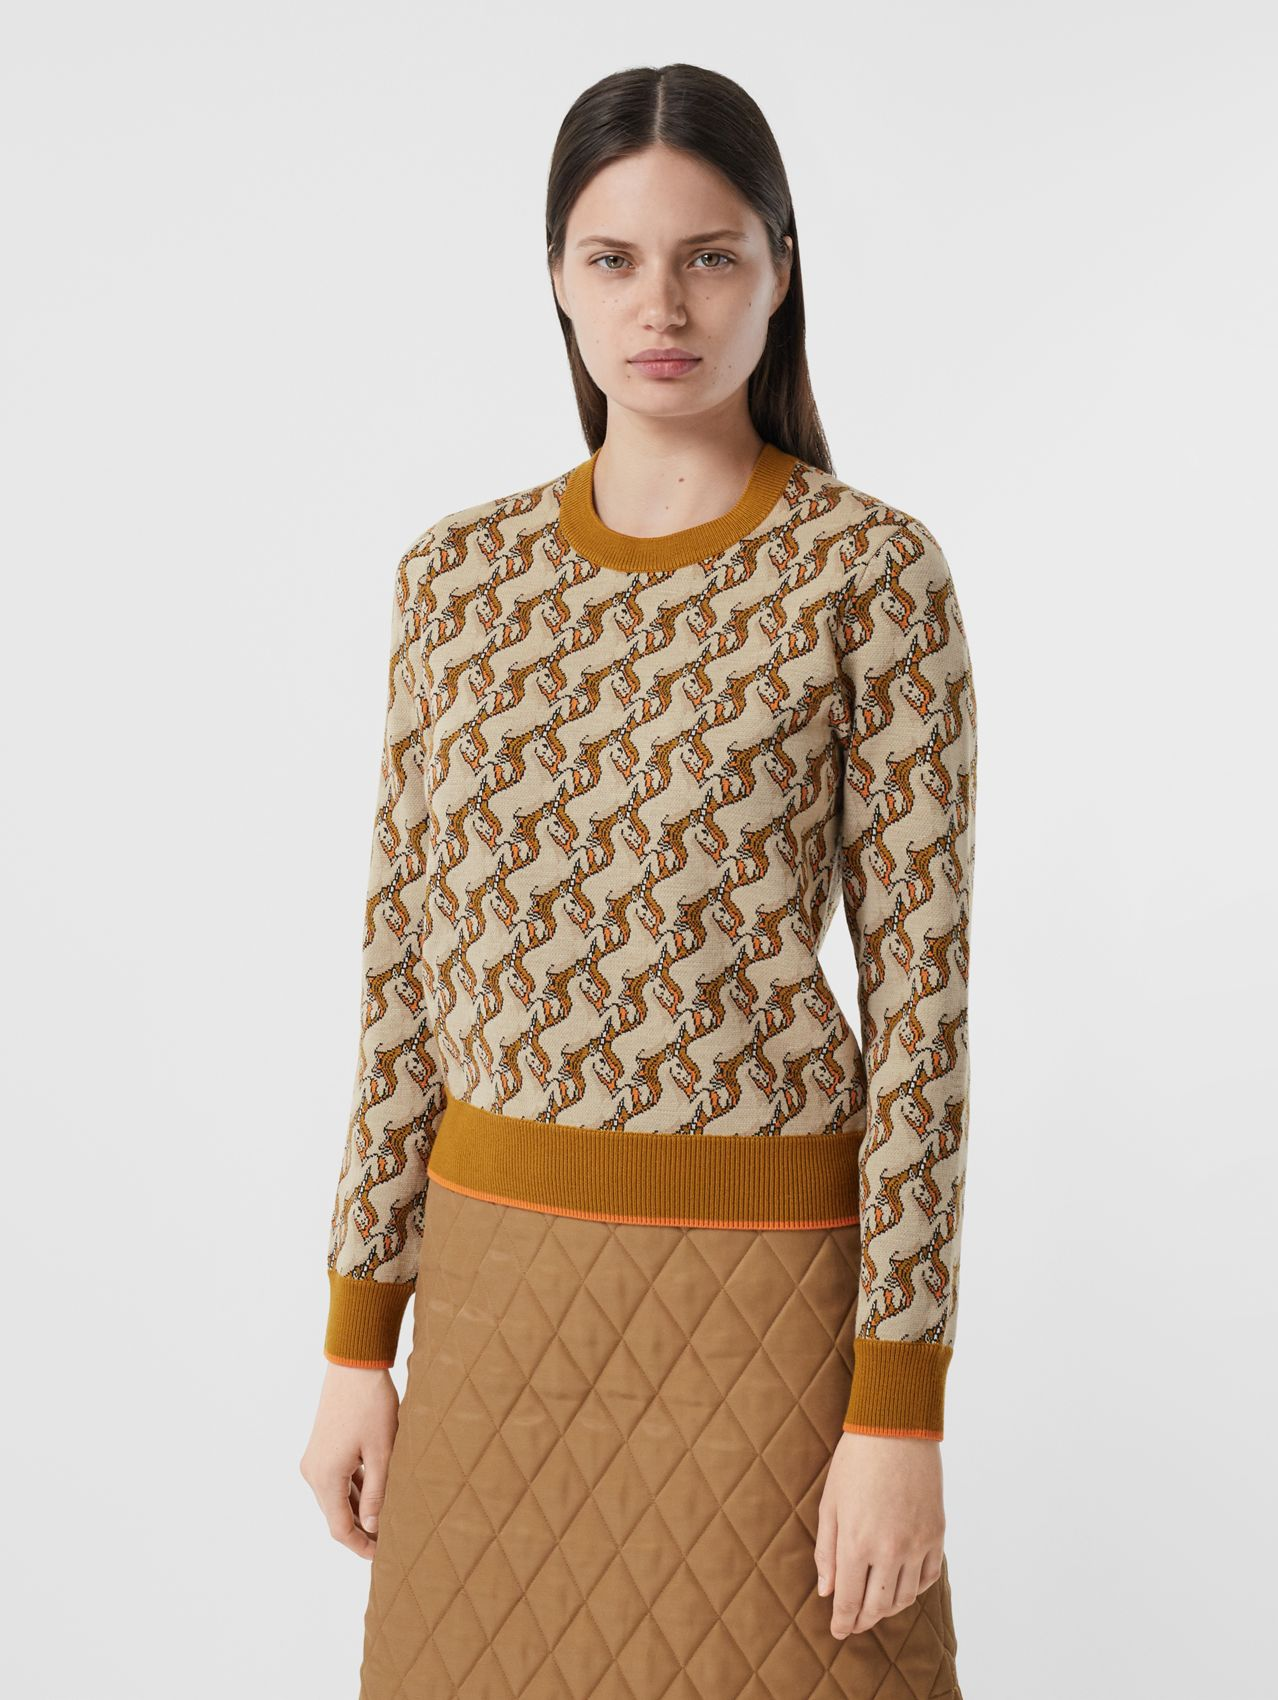 Unicorn Merino Wool Blend Jacquard Sweater in Ecru